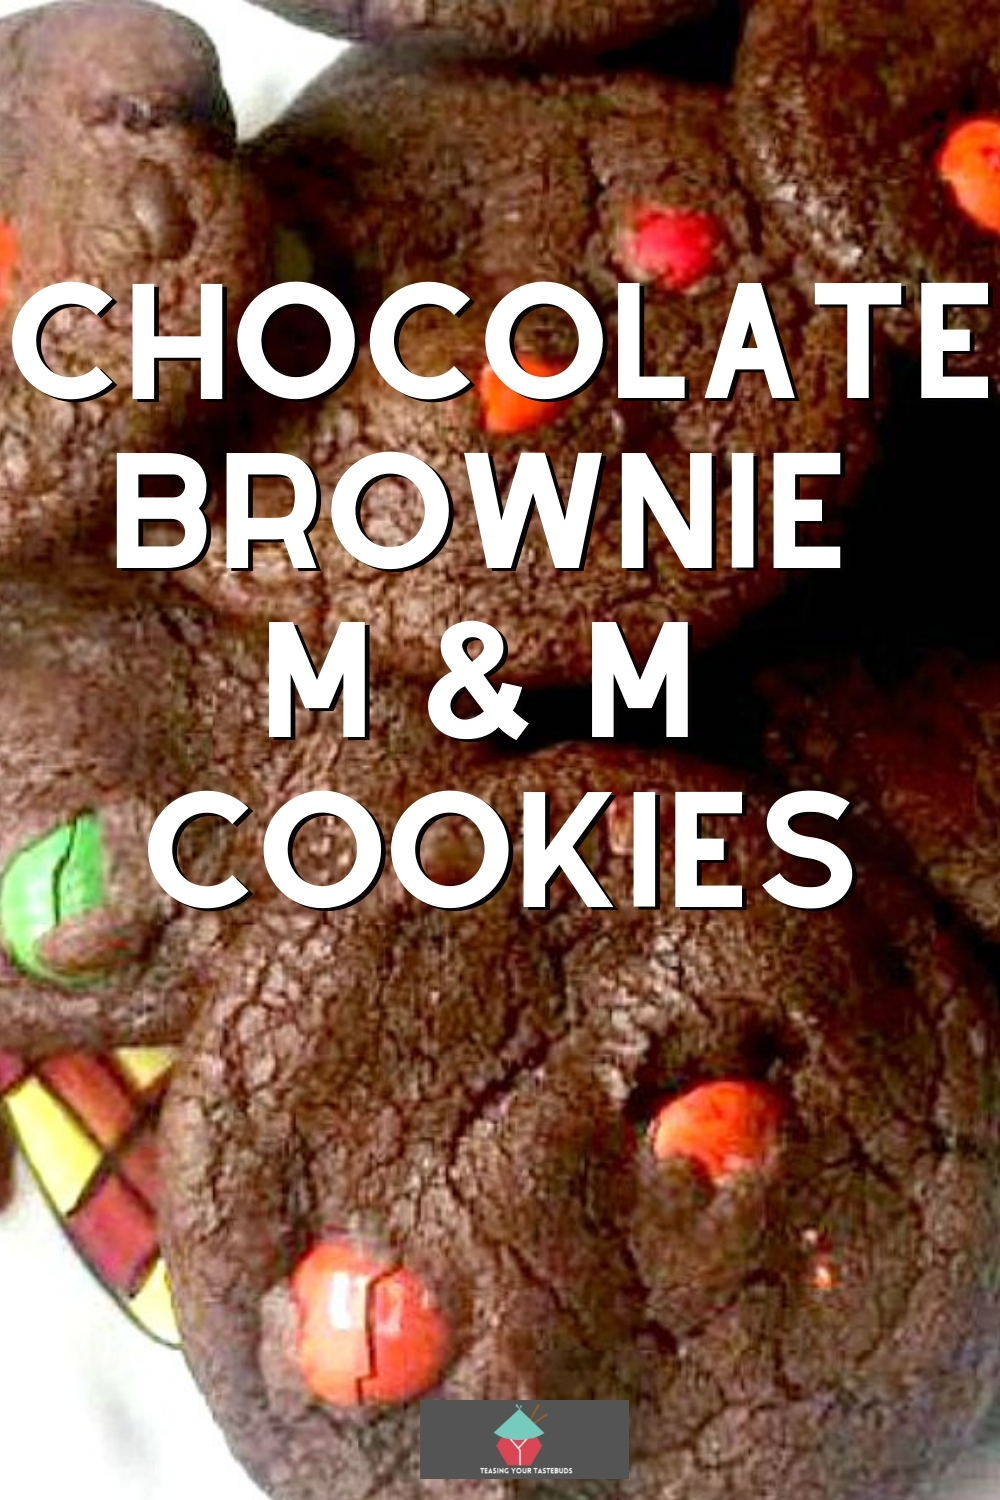 Chocolate Brownie M and M Cookies, using a cake box mix! Easy recipe and quick to make.